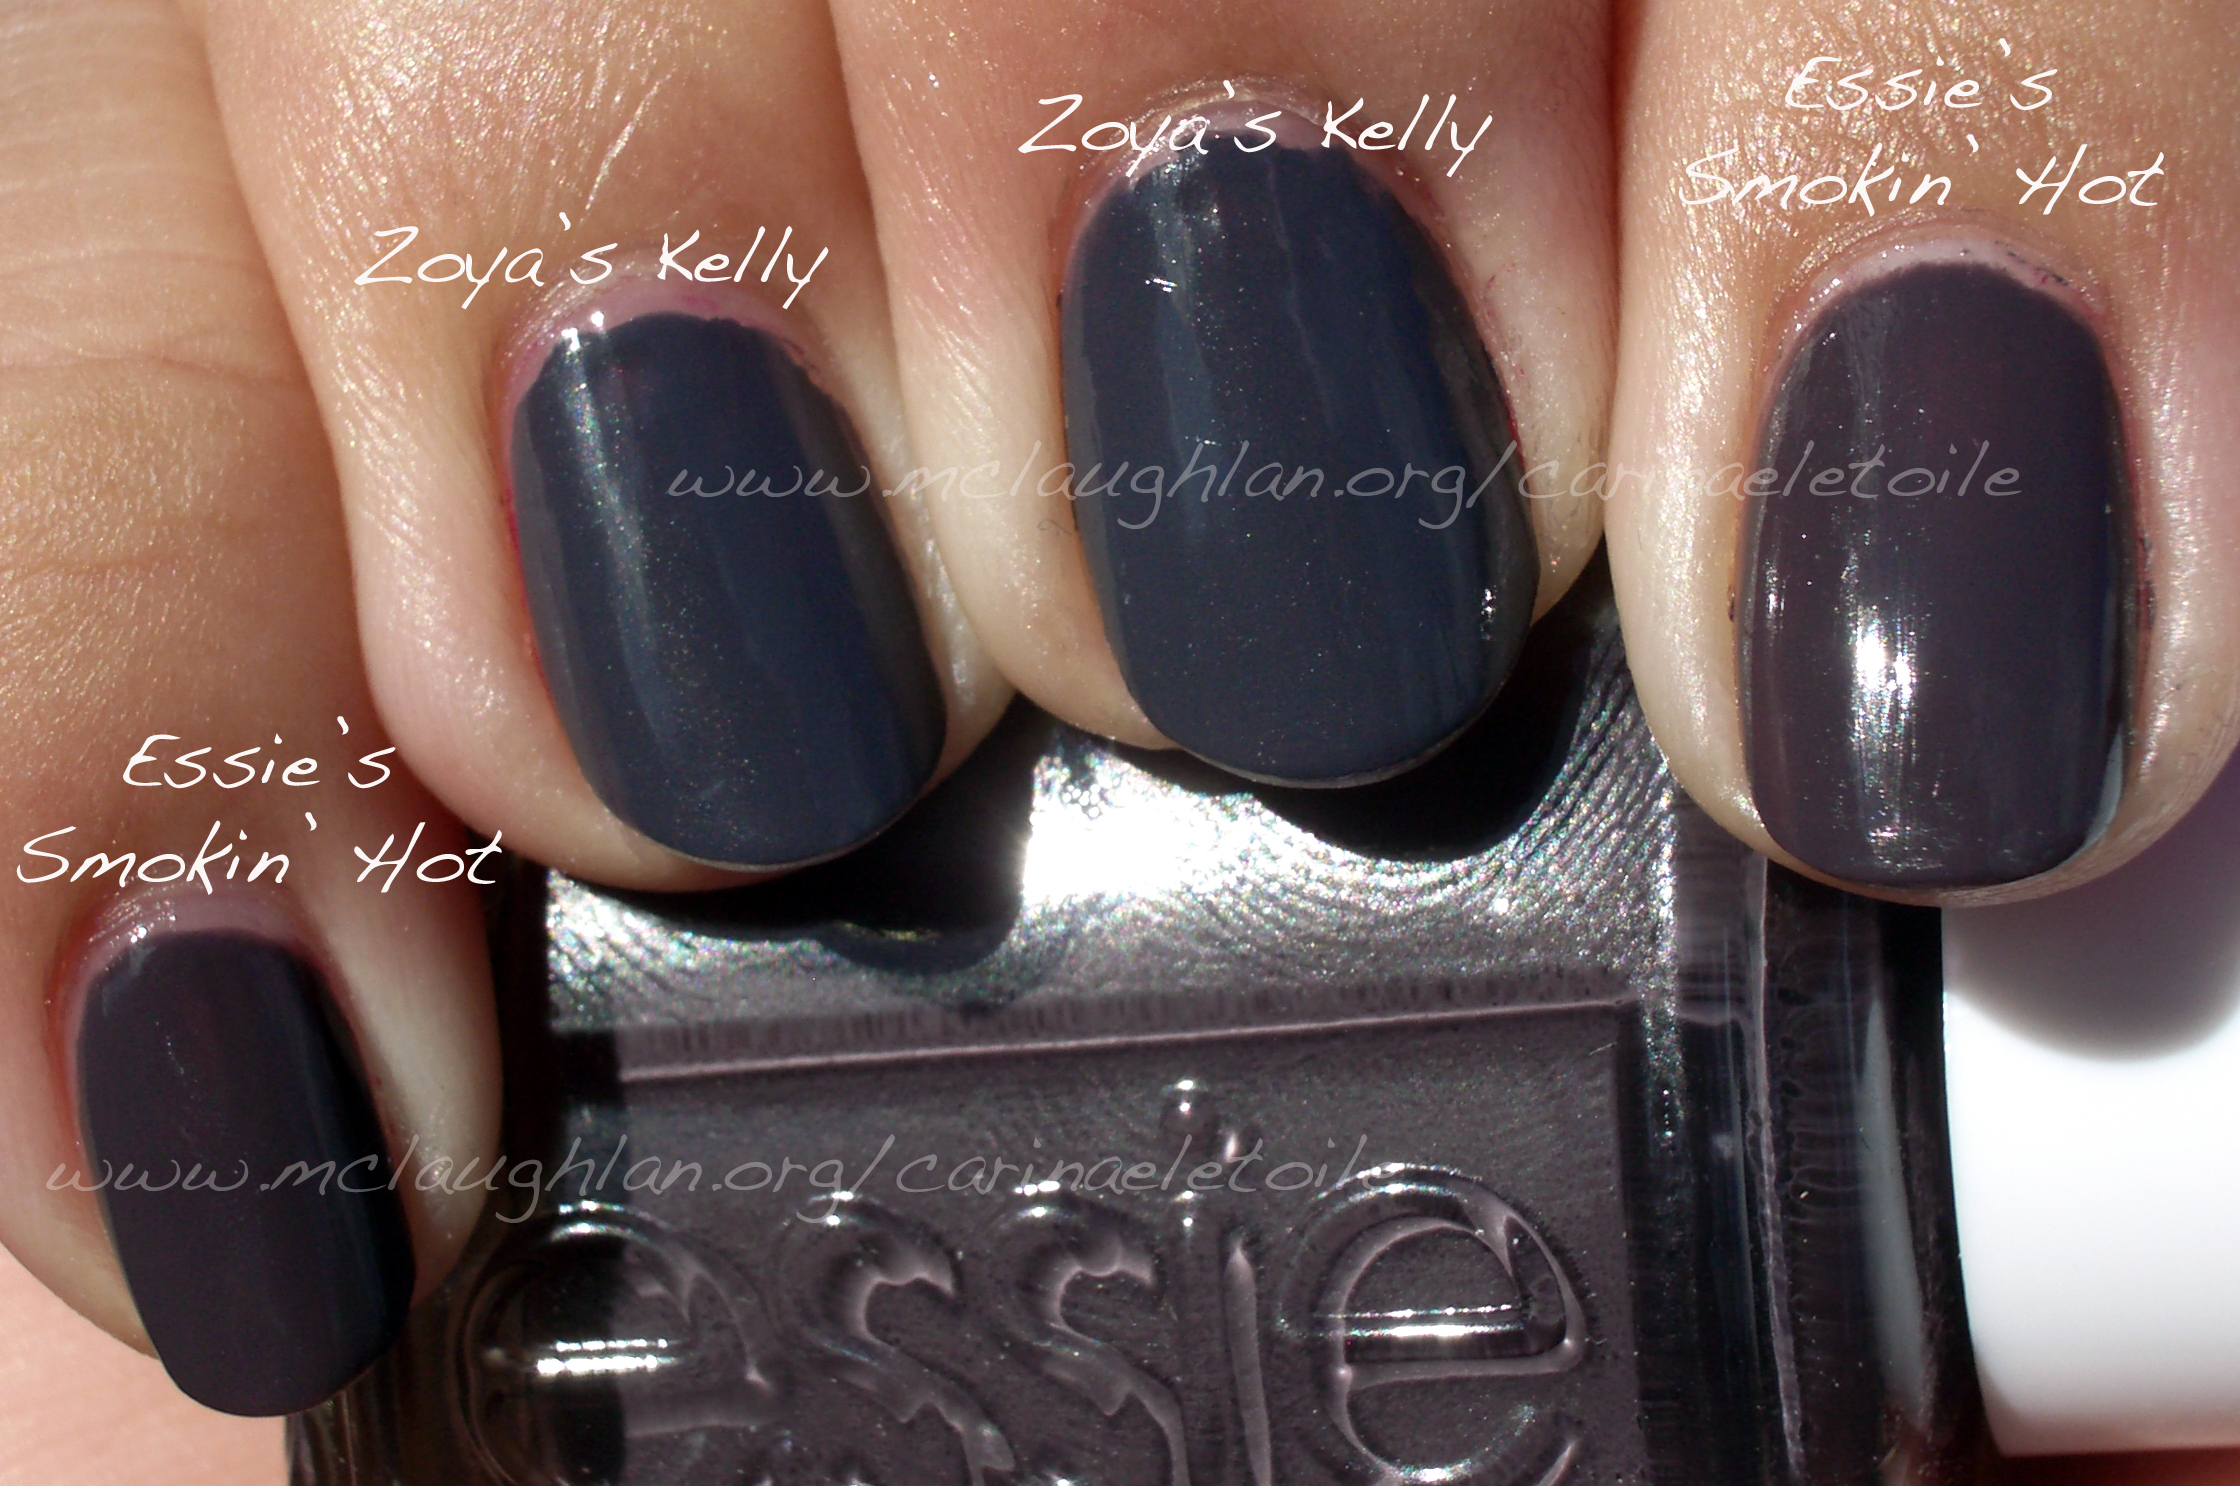 Essie – Smokin\' Hot vs Zoya – Kelly | Carinae L\'etoile\'s polish stash